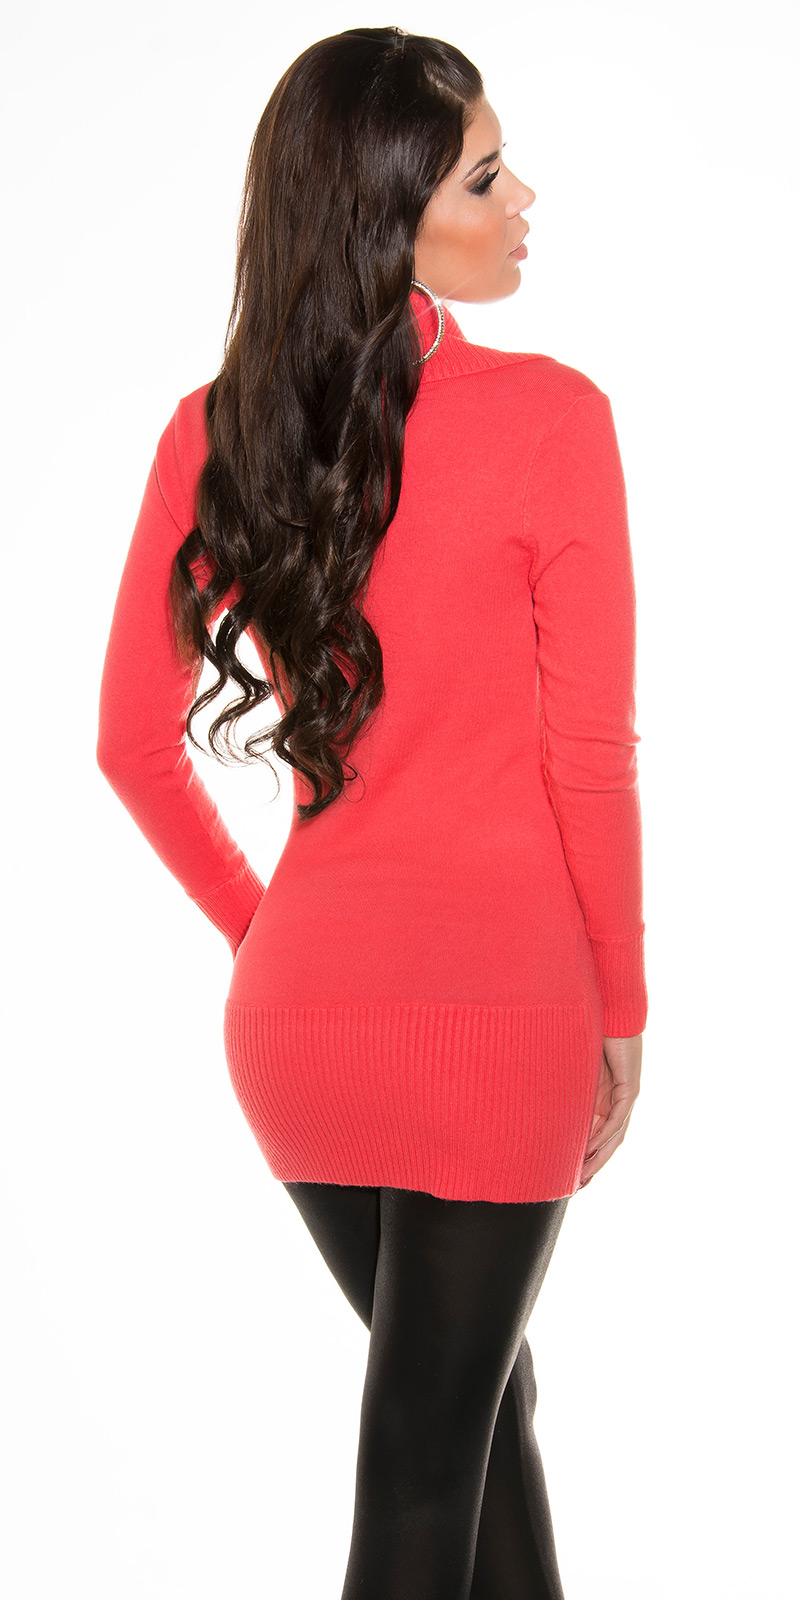 ookoucla_longsweater_with_mega-neck__color_coral_size_onesize_0000in-082_coral_18